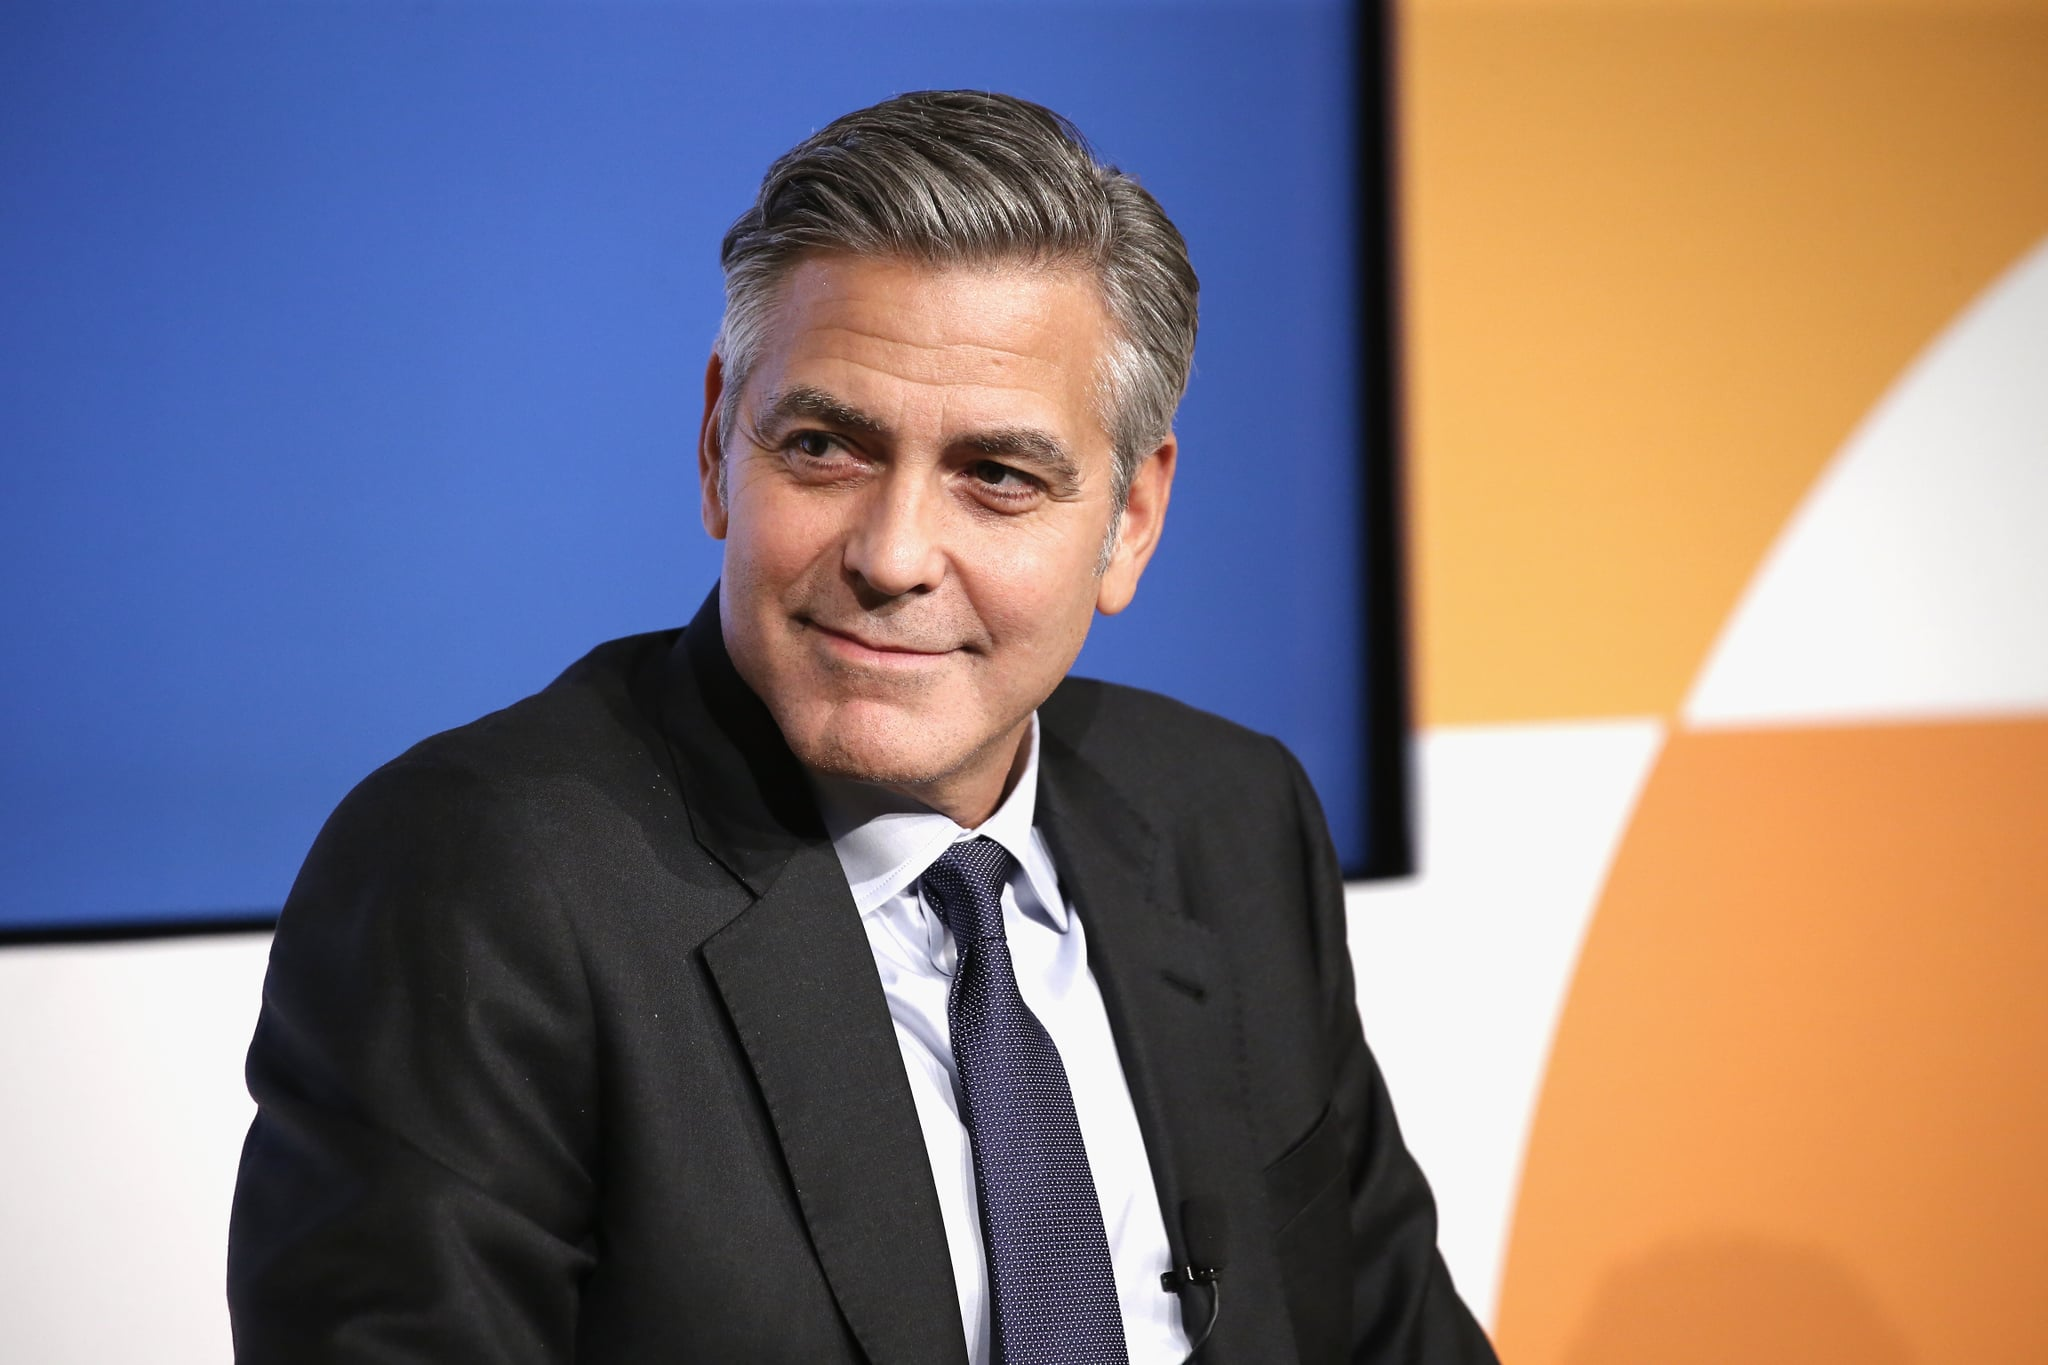 George Clooney to Direct and Star in 'Catch-22' Series From Paramount TV